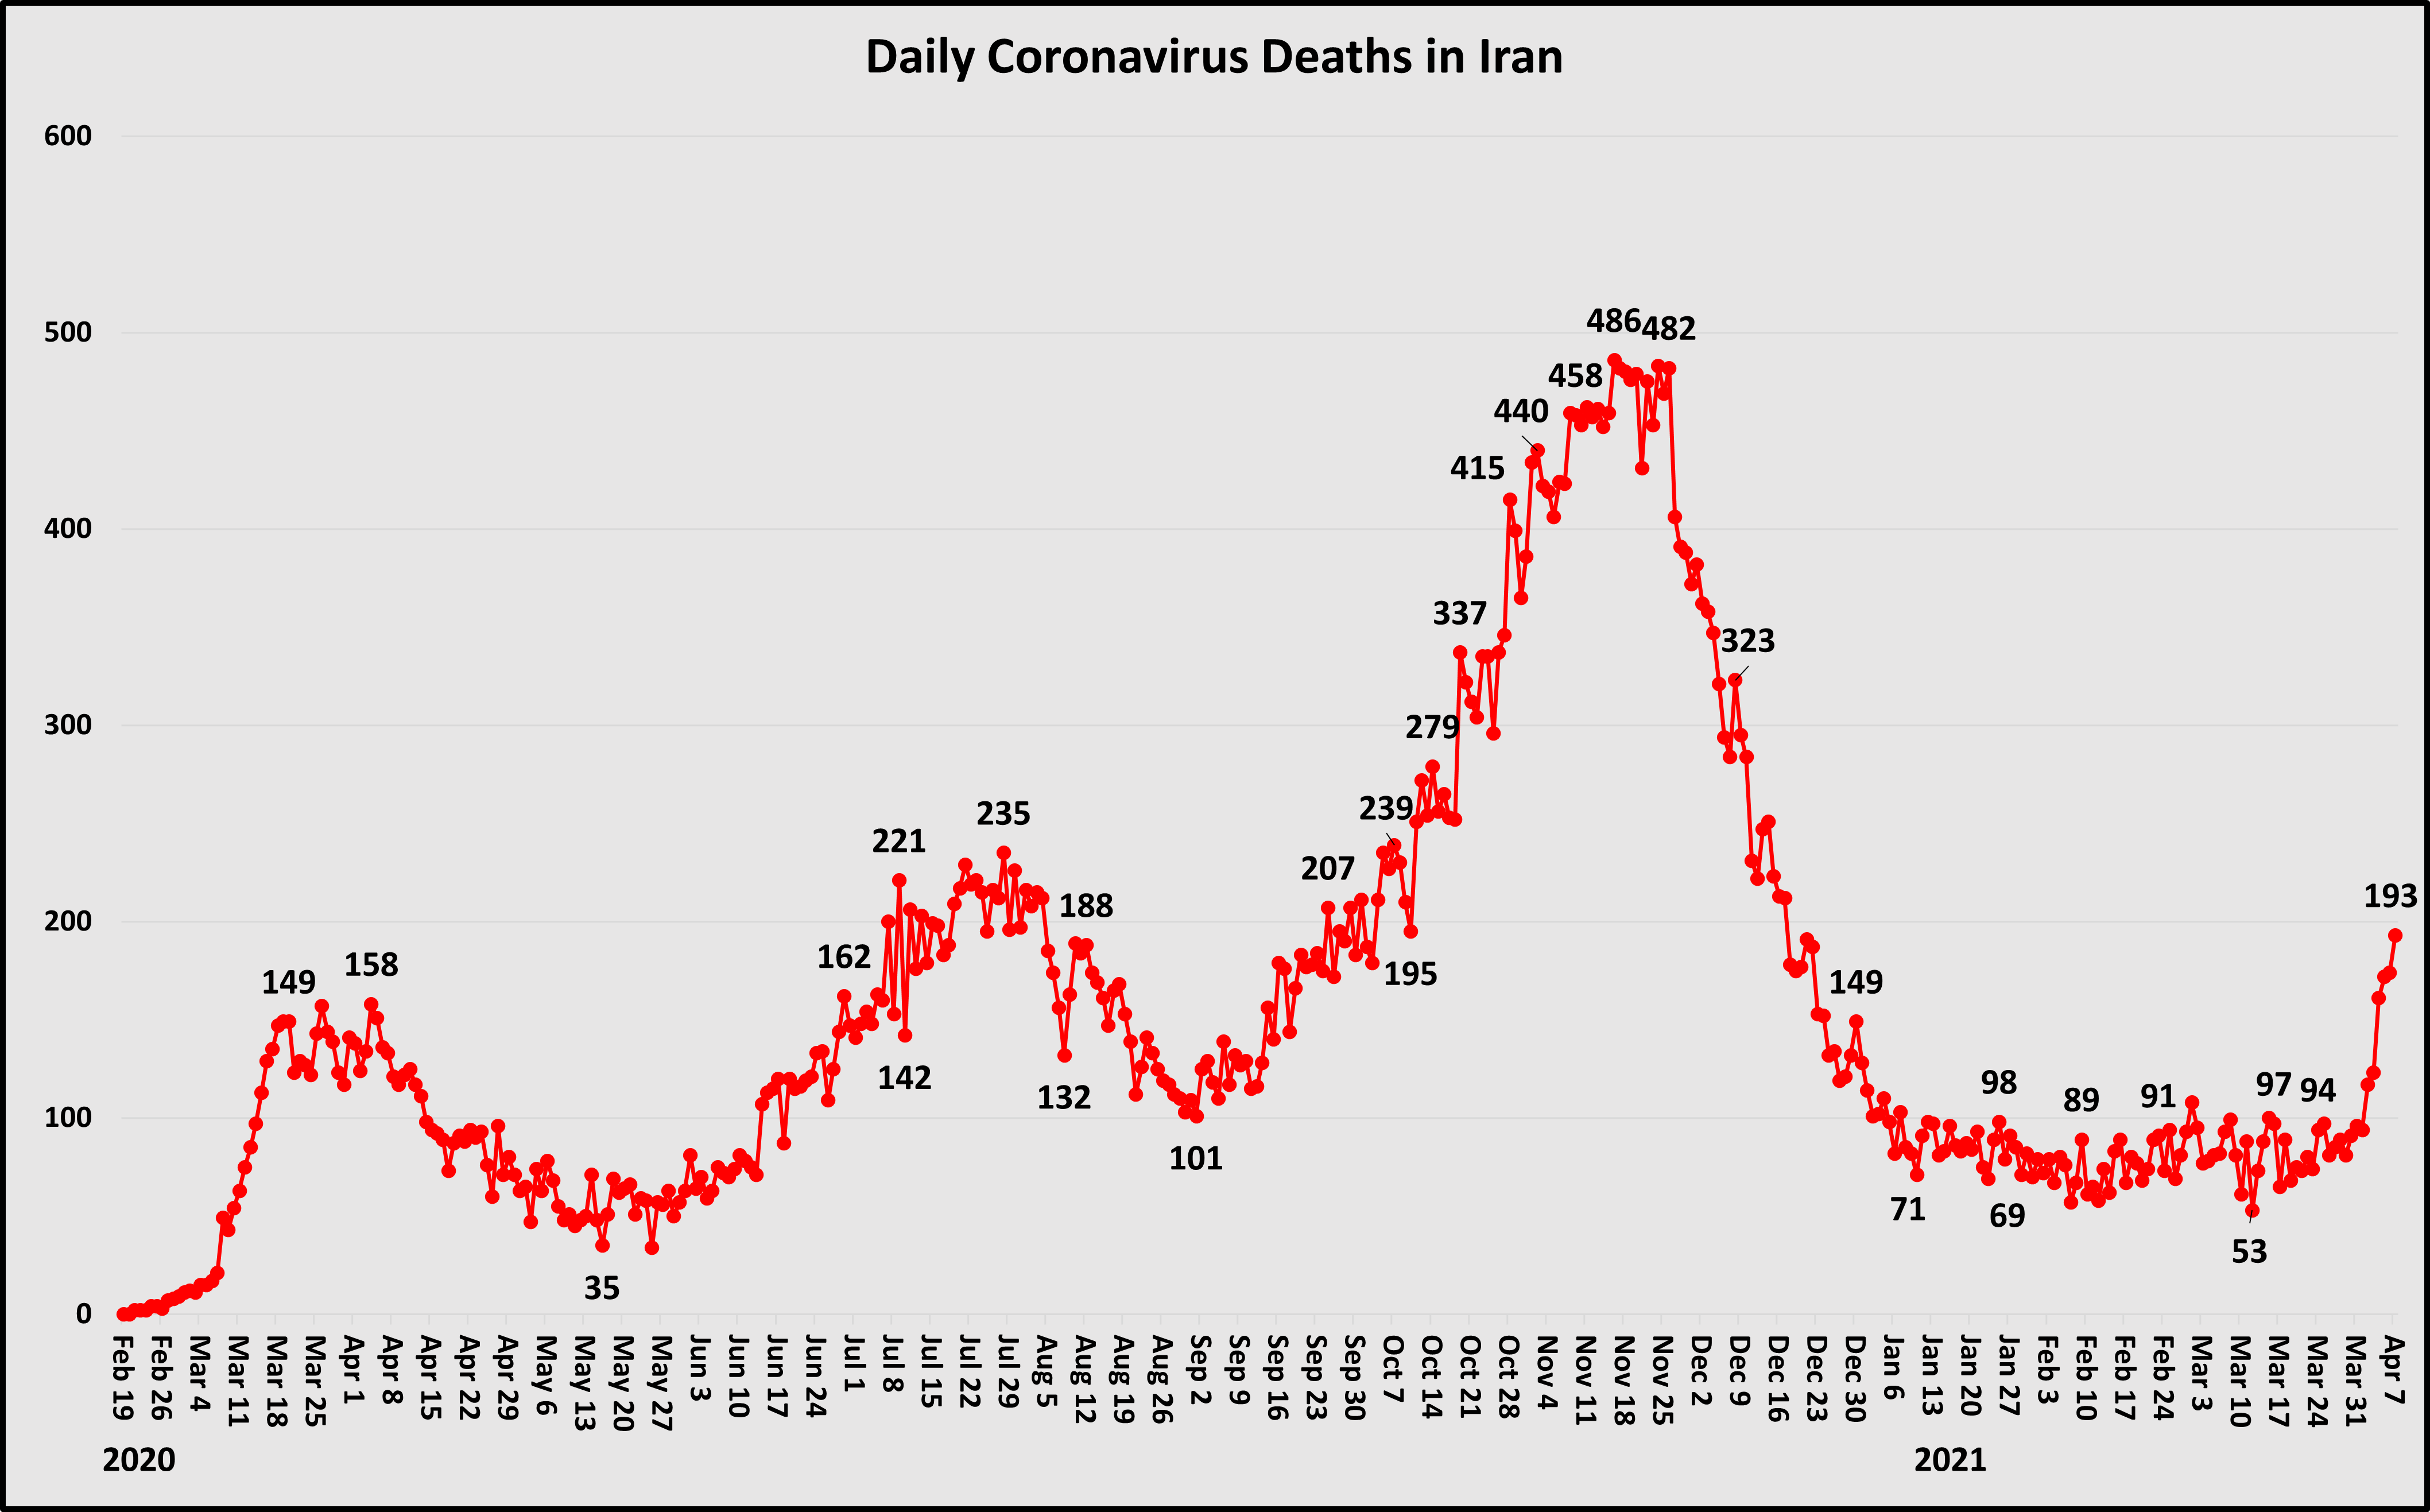 Daily COVID deaths in Iran